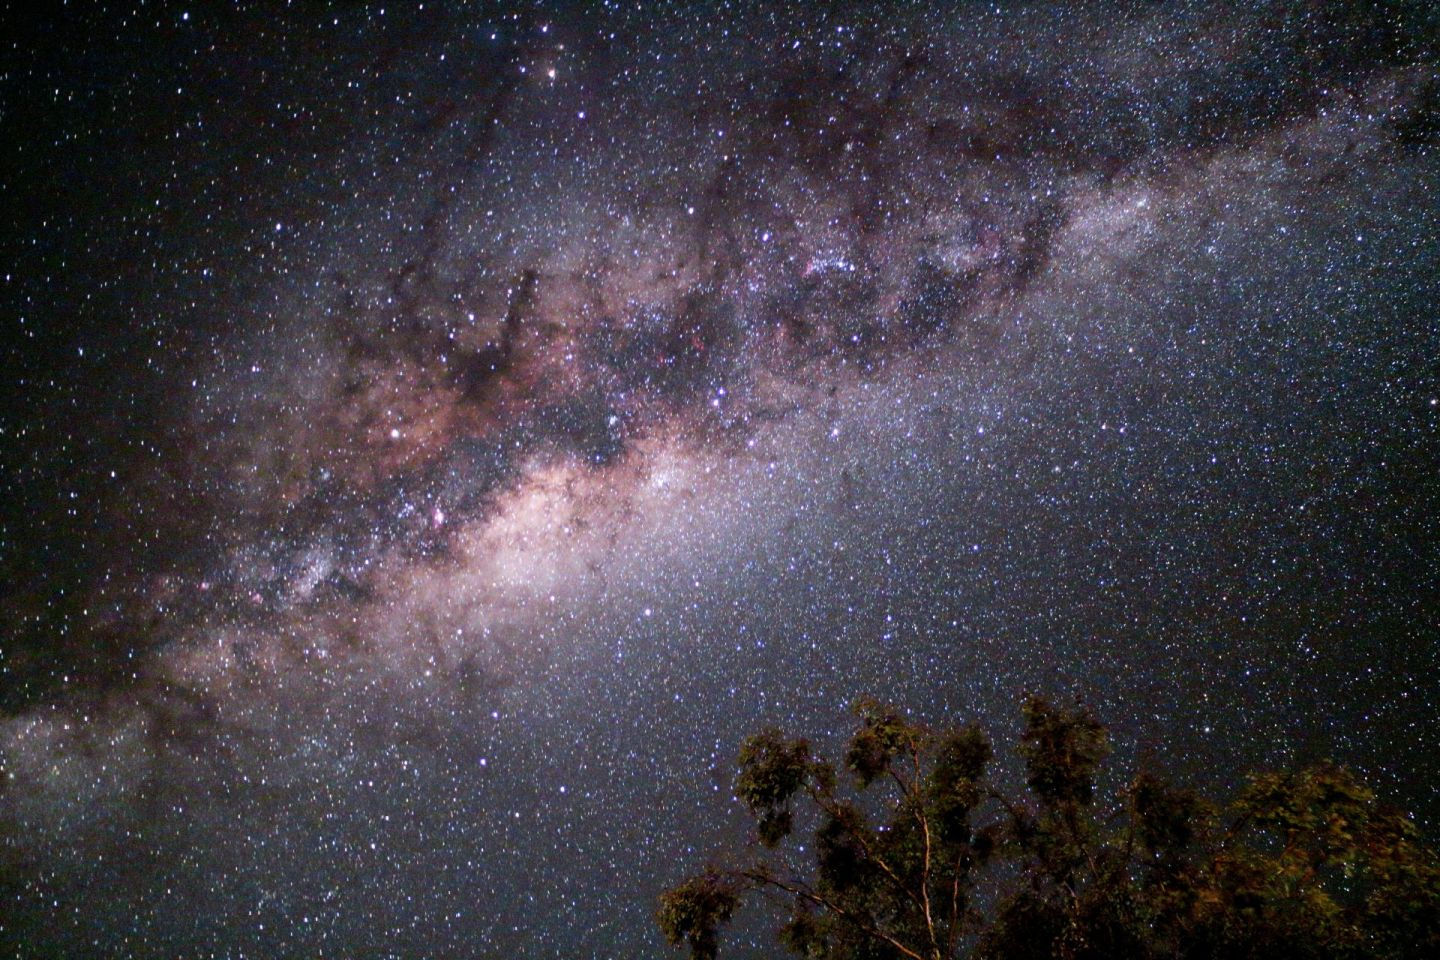 Wide A_29 APR 2017_AUS Coon_M3m 18mm_ISO3200_30sX1_Tripod_Single Frame_IMG_0380 (2)_PS001R.jpg